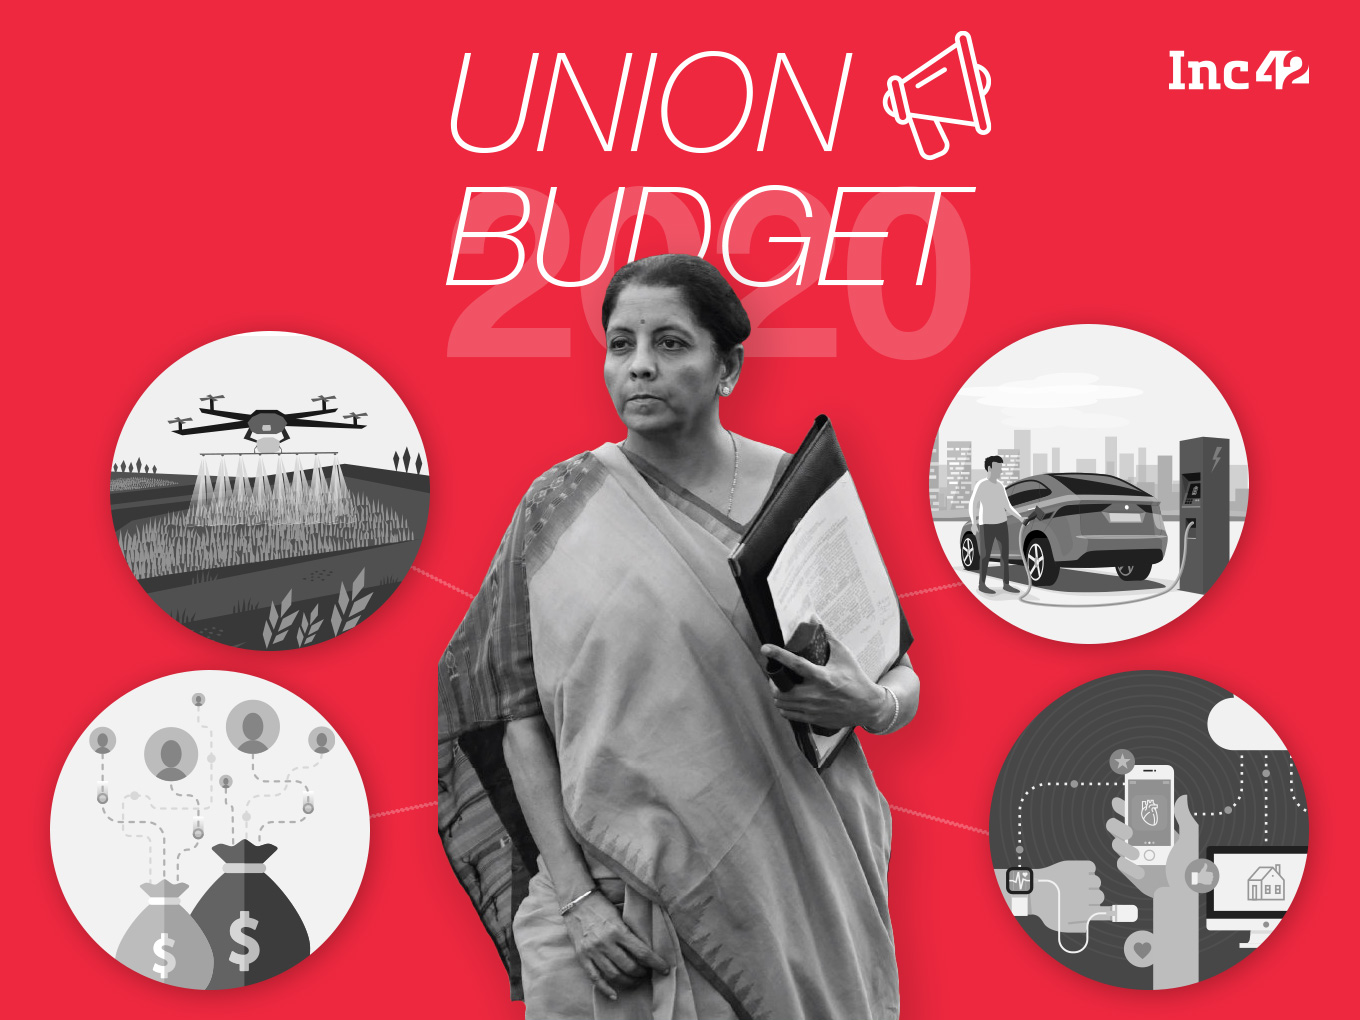 Union Budget 2020: Top 11 Demands From India's Startups, Investors